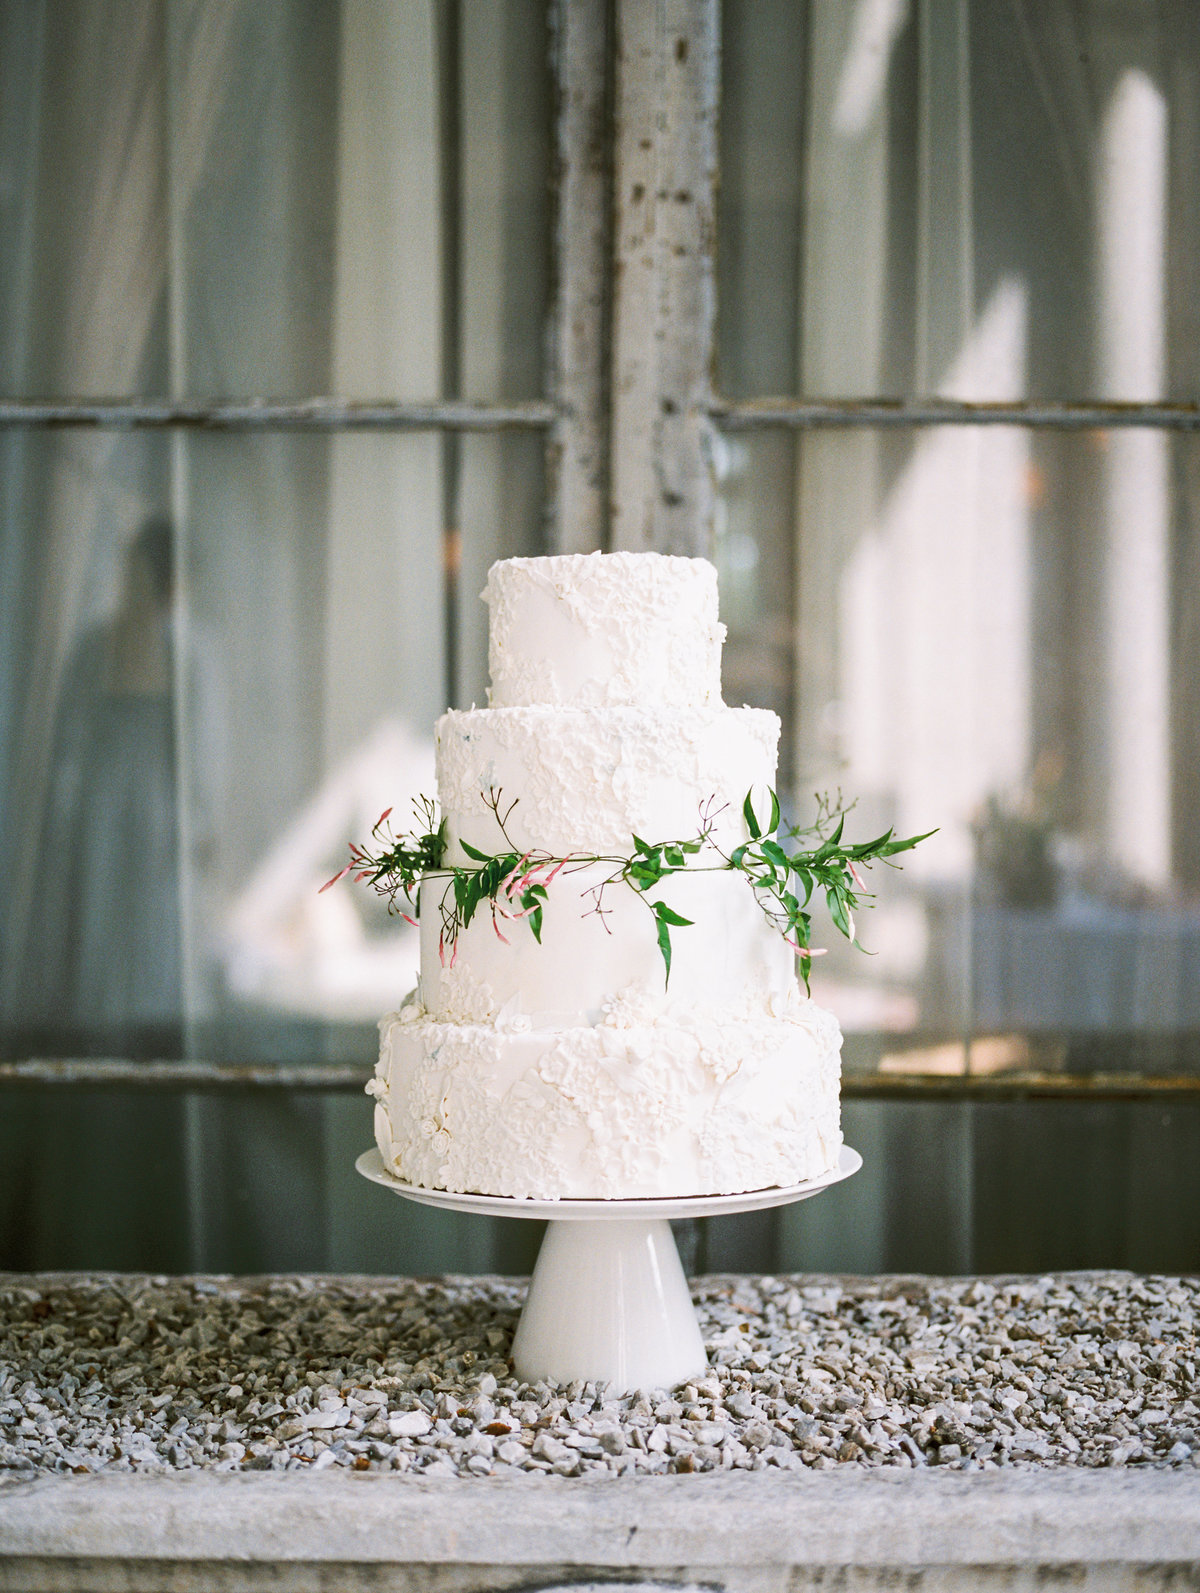 Textured wedding cake for a Garden wedding in Yonkers, New York